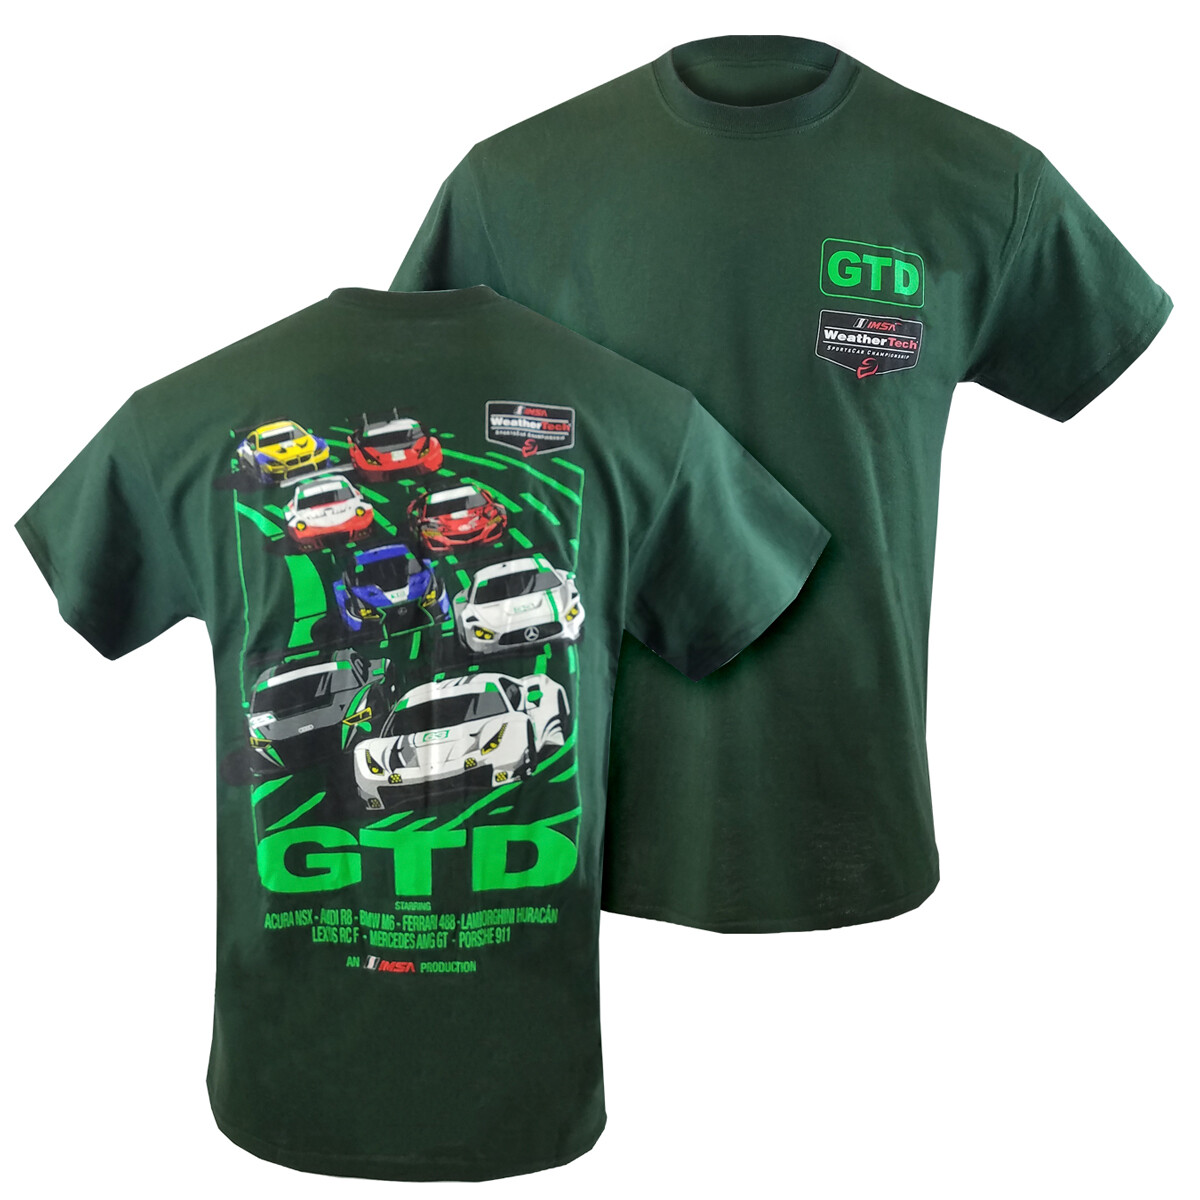 IMSA Movie Poster Design Tee - Green